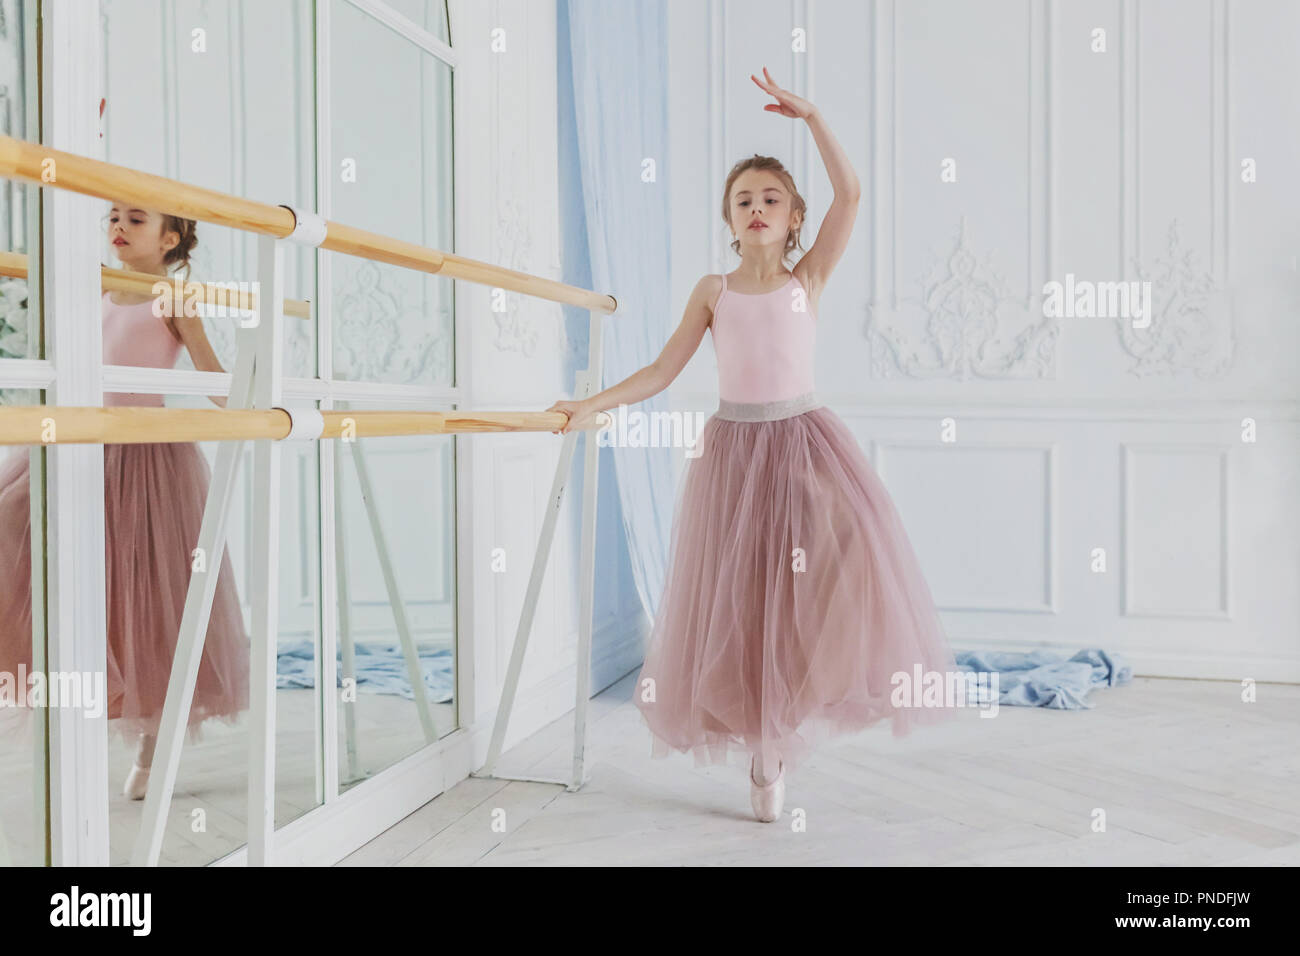 Ballet Positions Stock Photos & Ballet Positions Stock